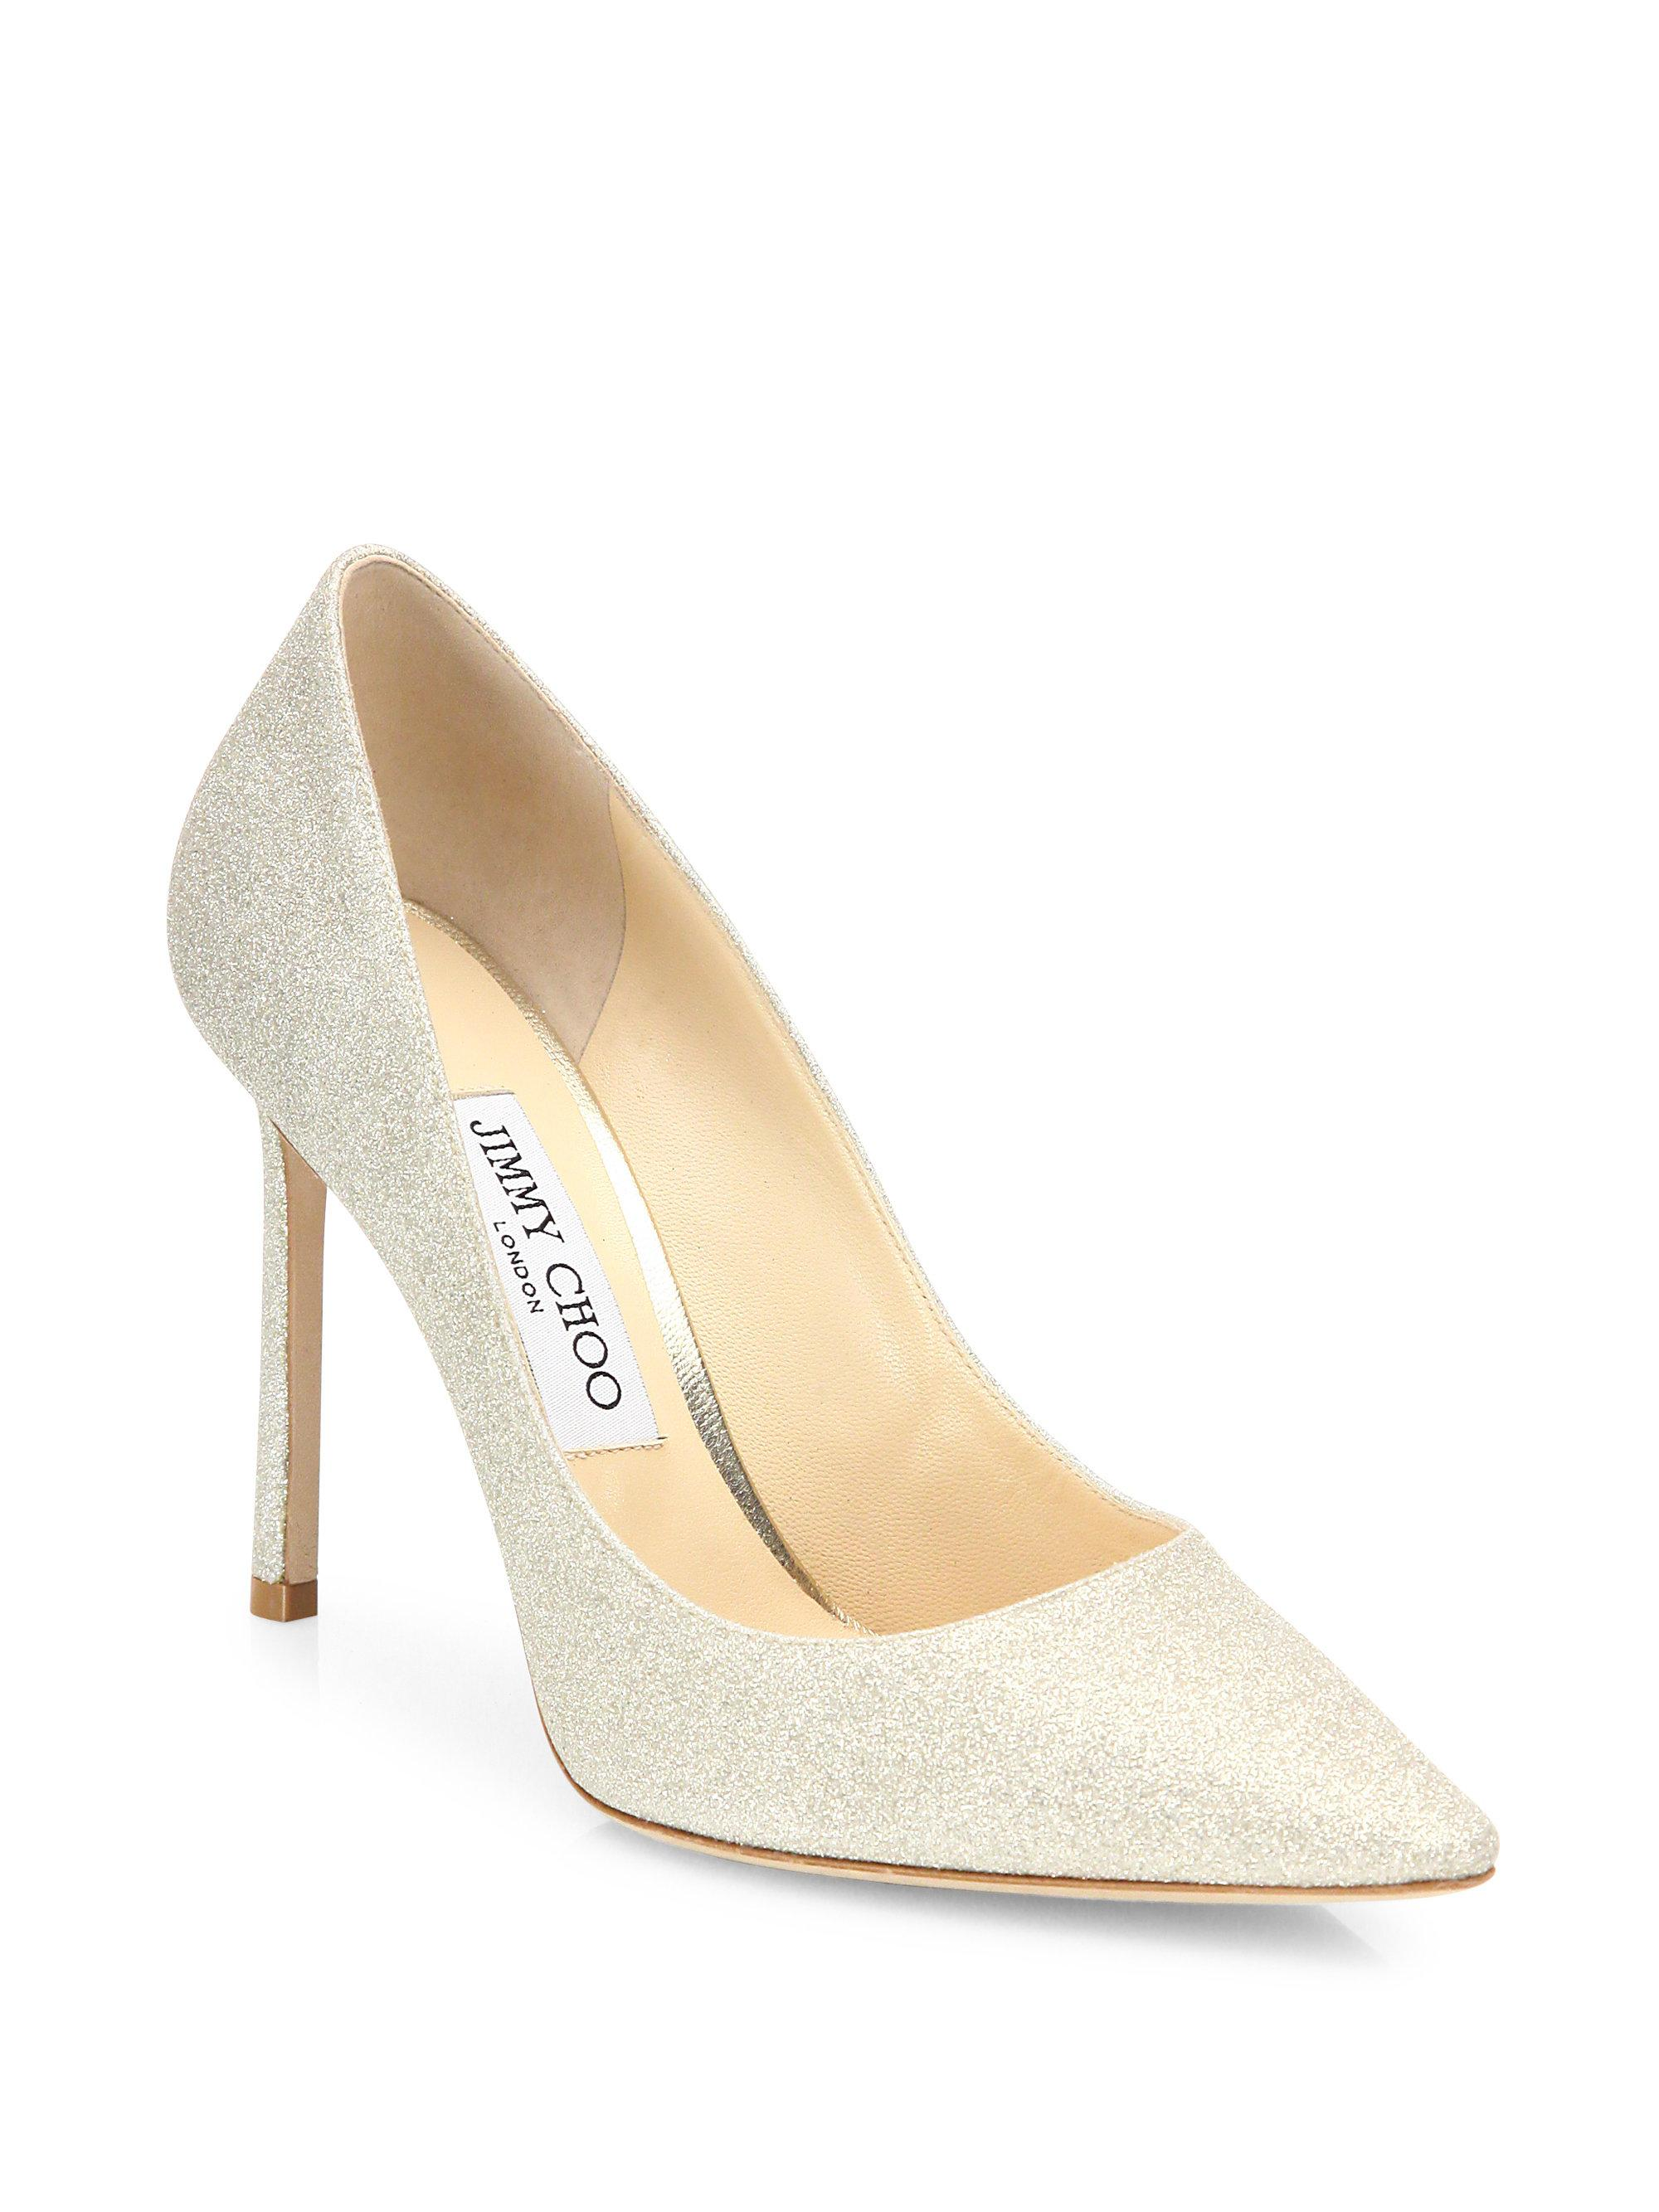 Romy 100 dusty glitter pump Jimmy Choo London qAWCsIr5